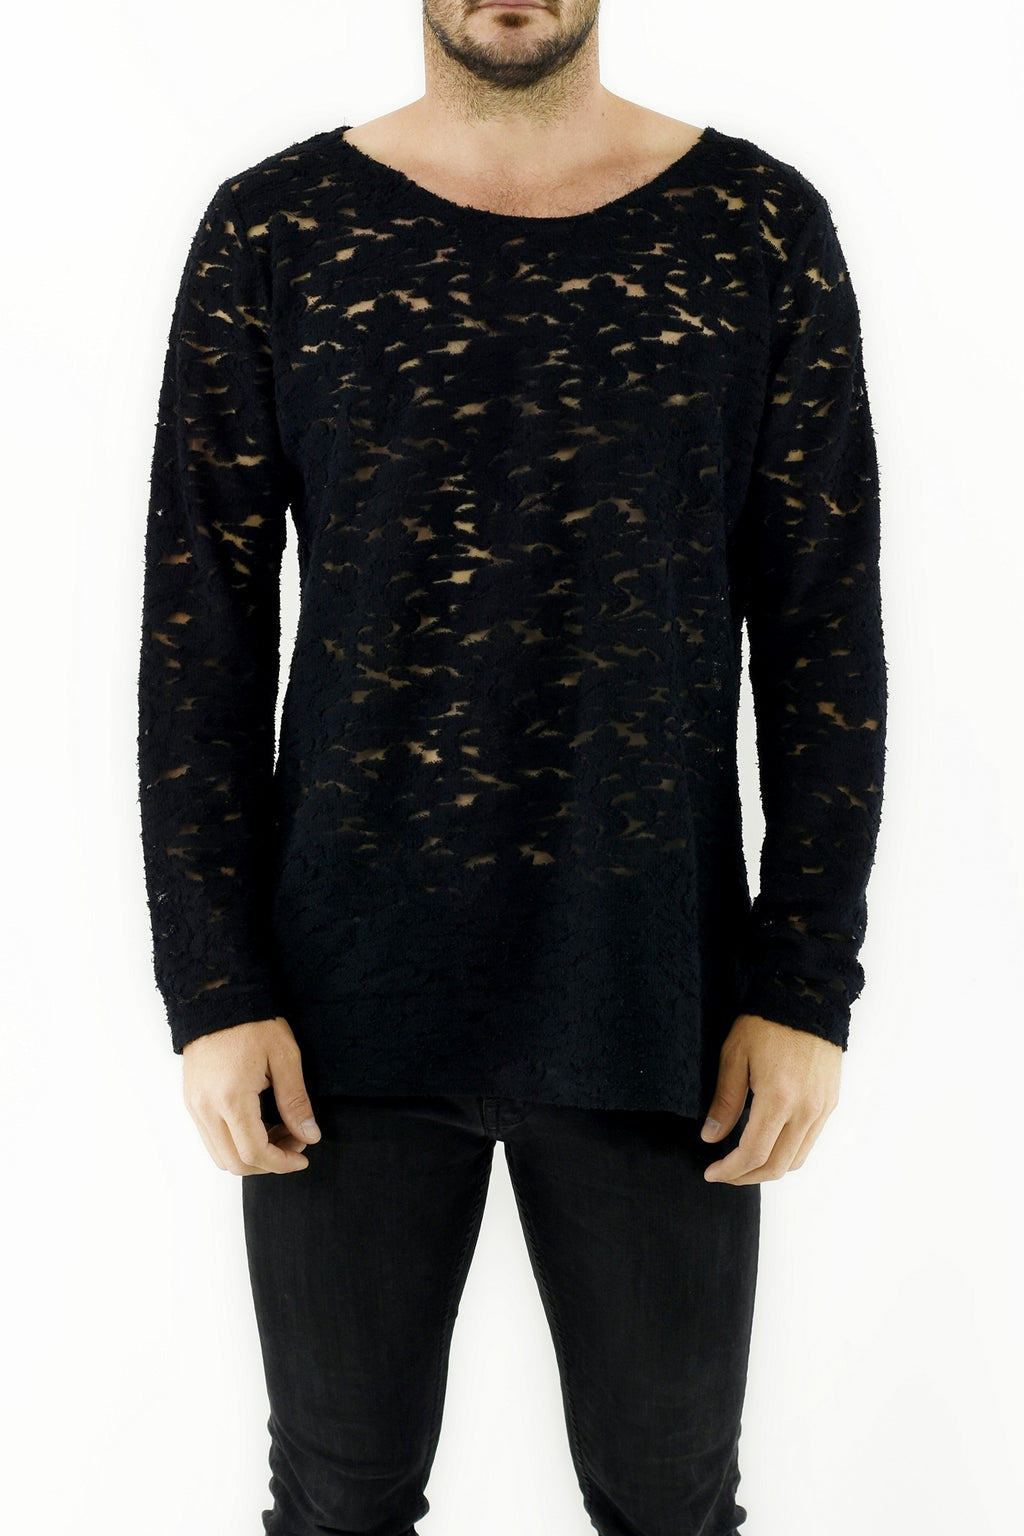 Mens Black Lace T shirt ZG5268